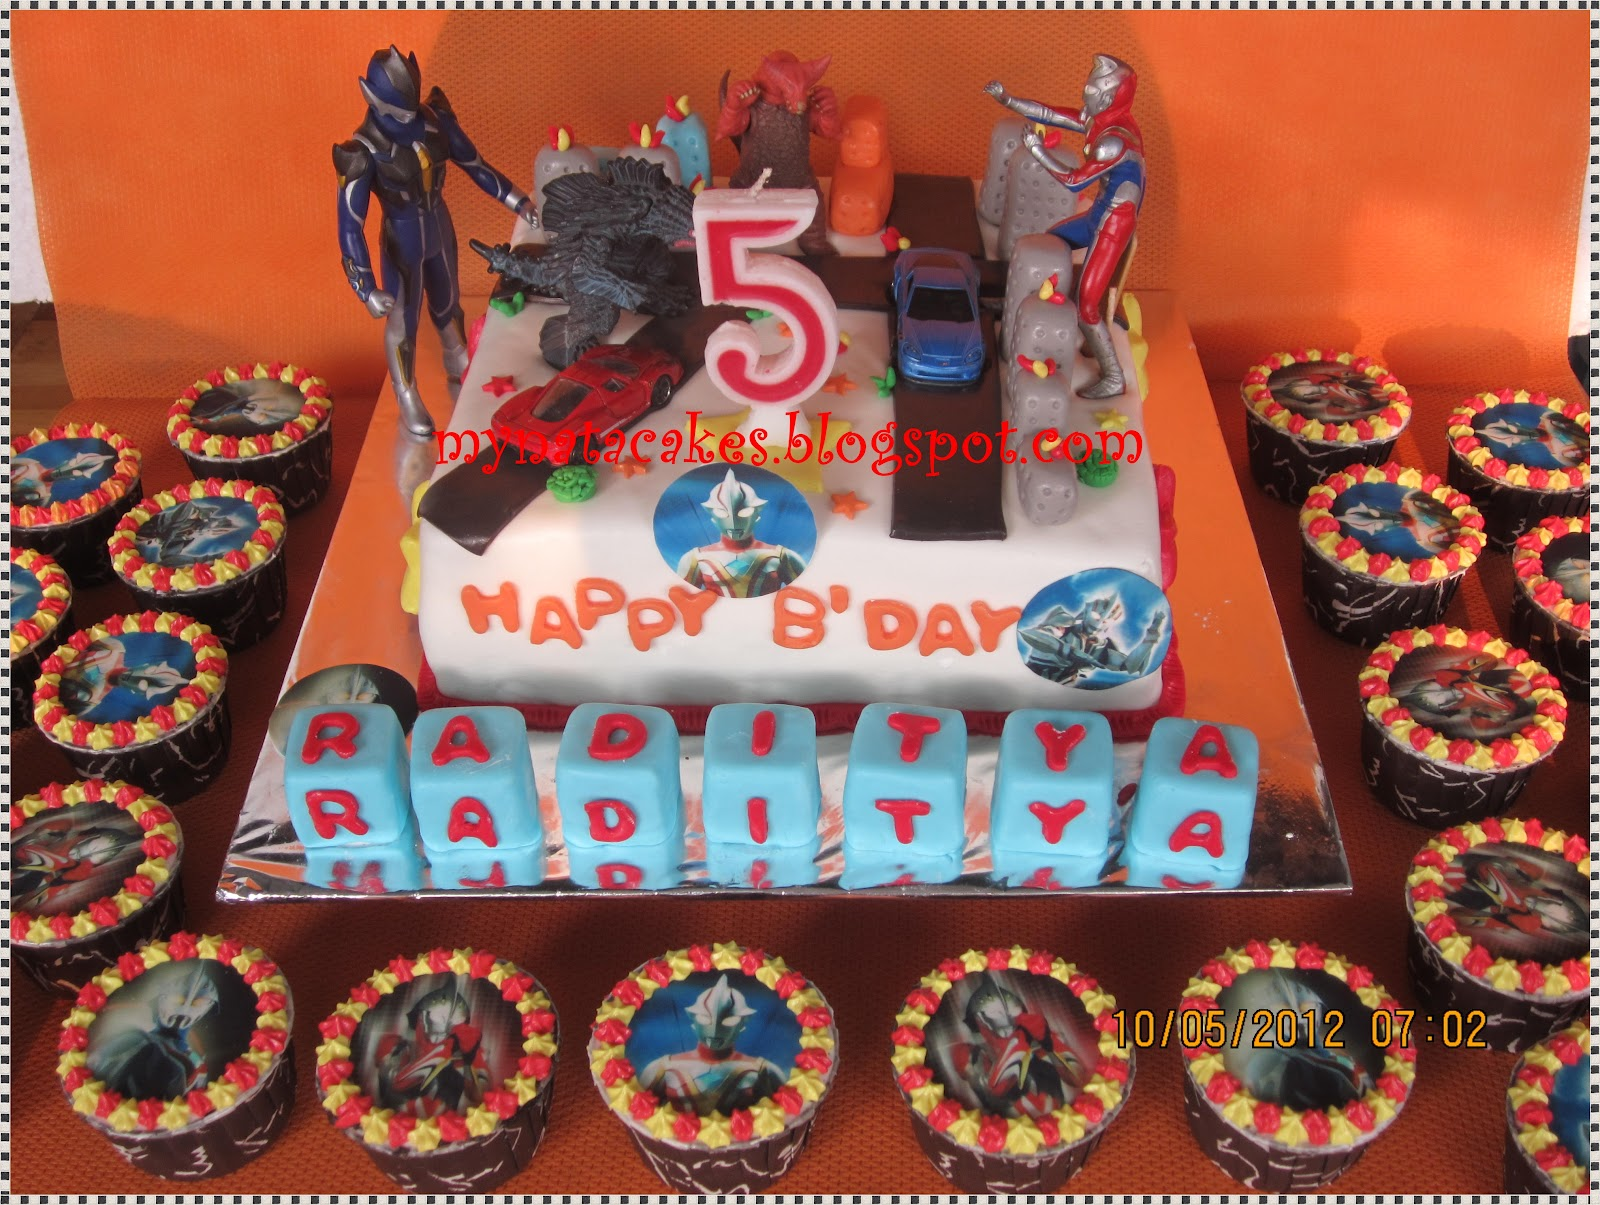 Mynata Cakes ultraman birthday cake for Raditya